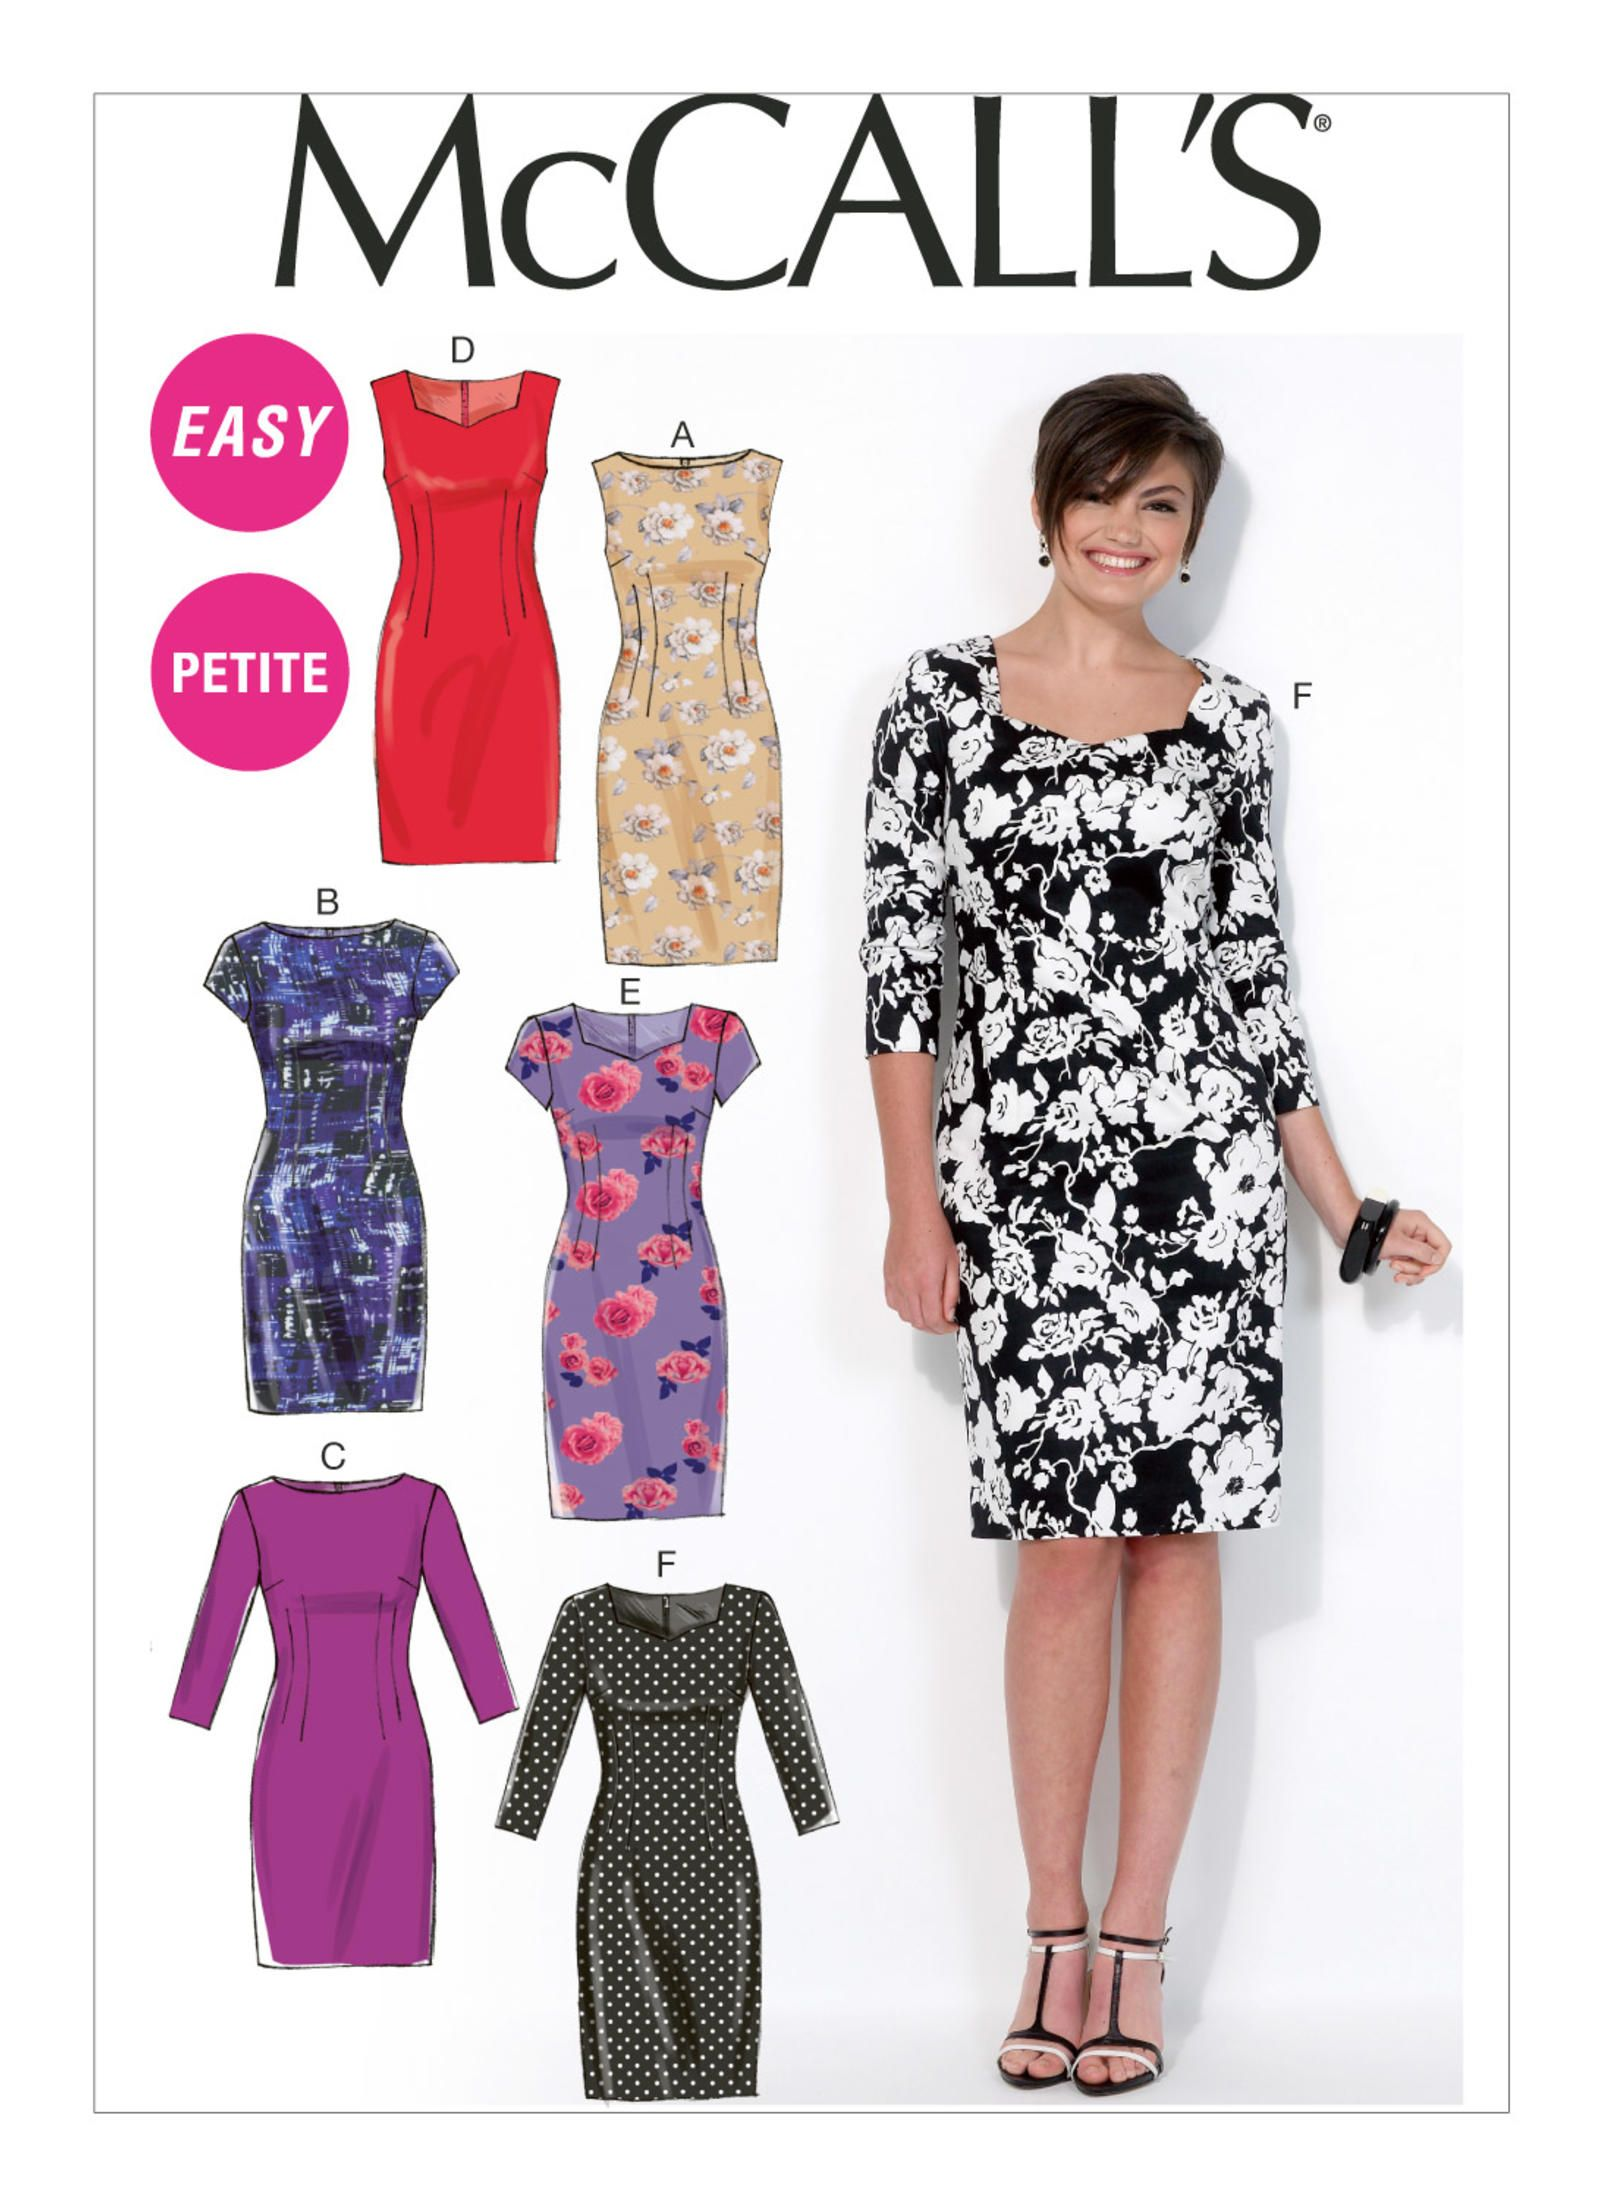 M7085 | McCall\'s Patterns - practical dress, see "|1600|2200|?|6c4a488ce4f2df4d754a844b2105b679|False|UNLIKELY|0.31081581115722656